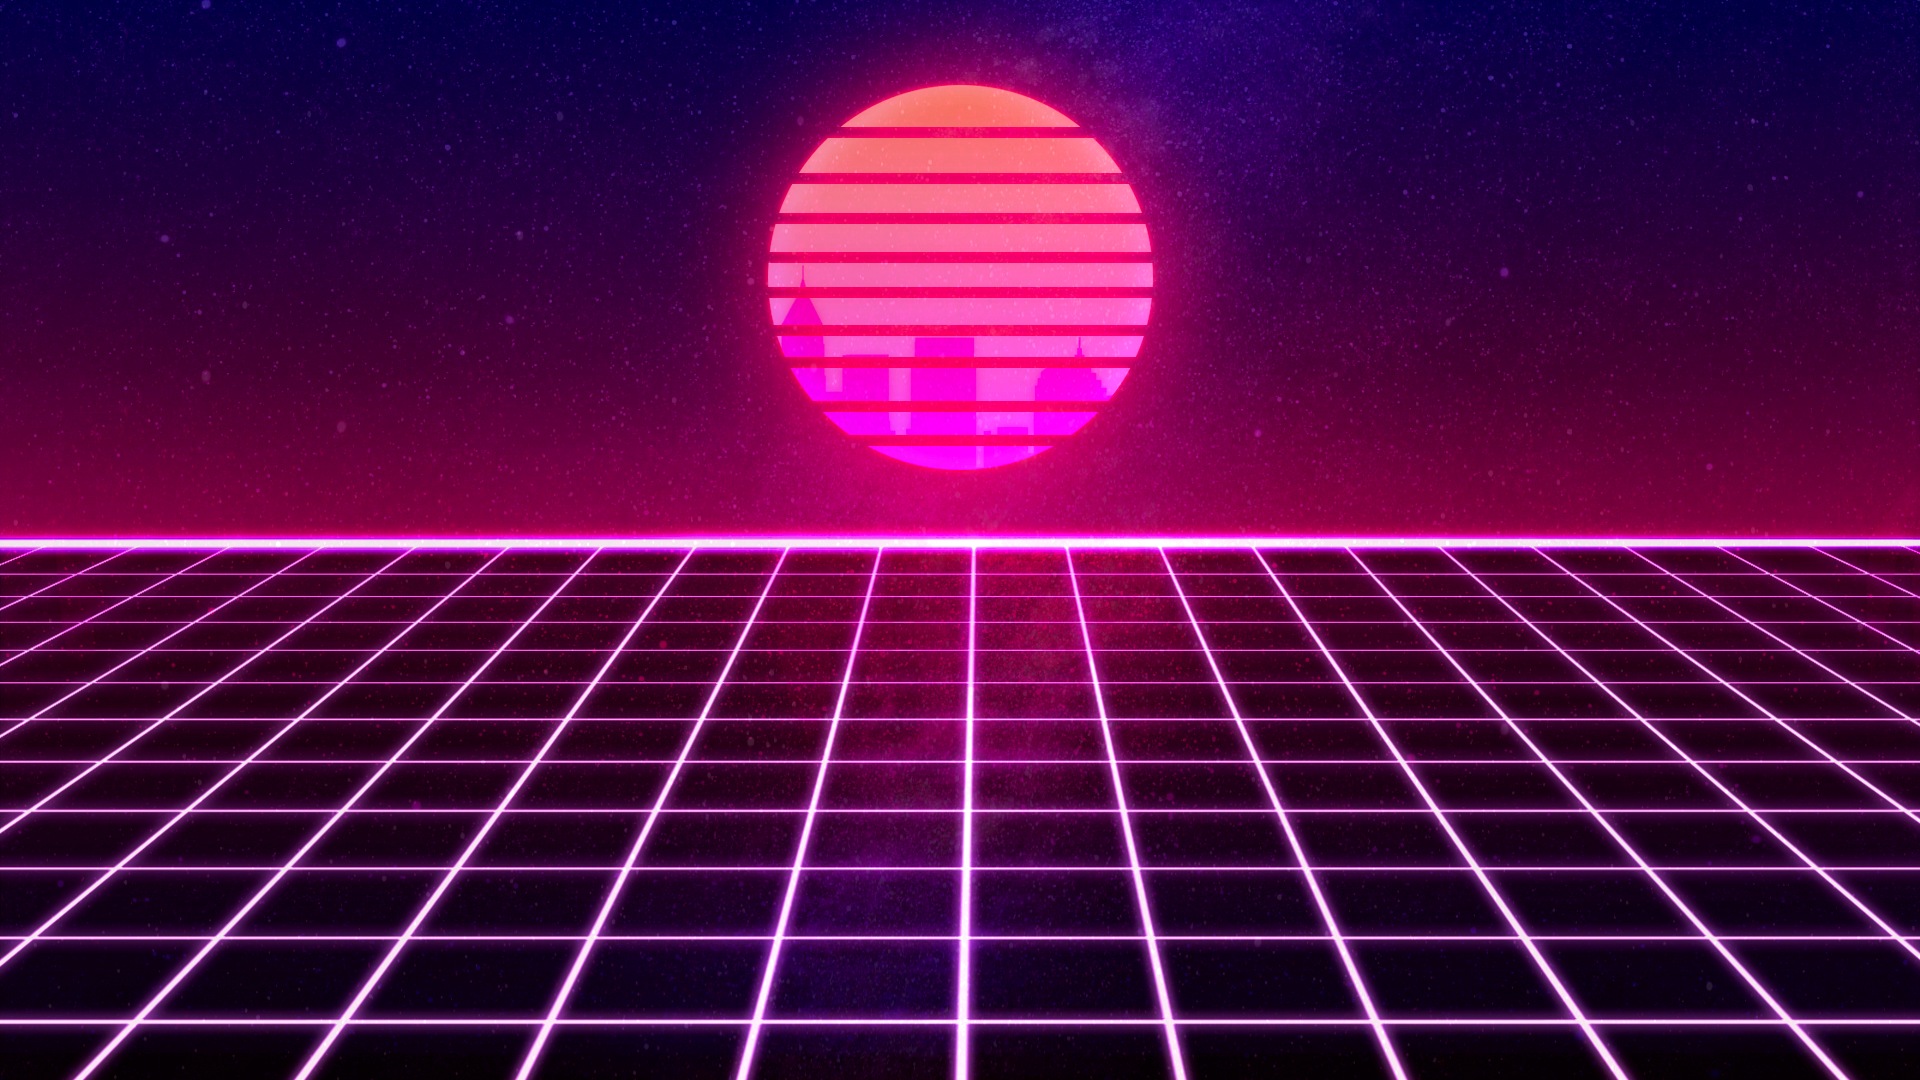 80's Style Wallpaper [1920x1080] Cool 80s wallpapers